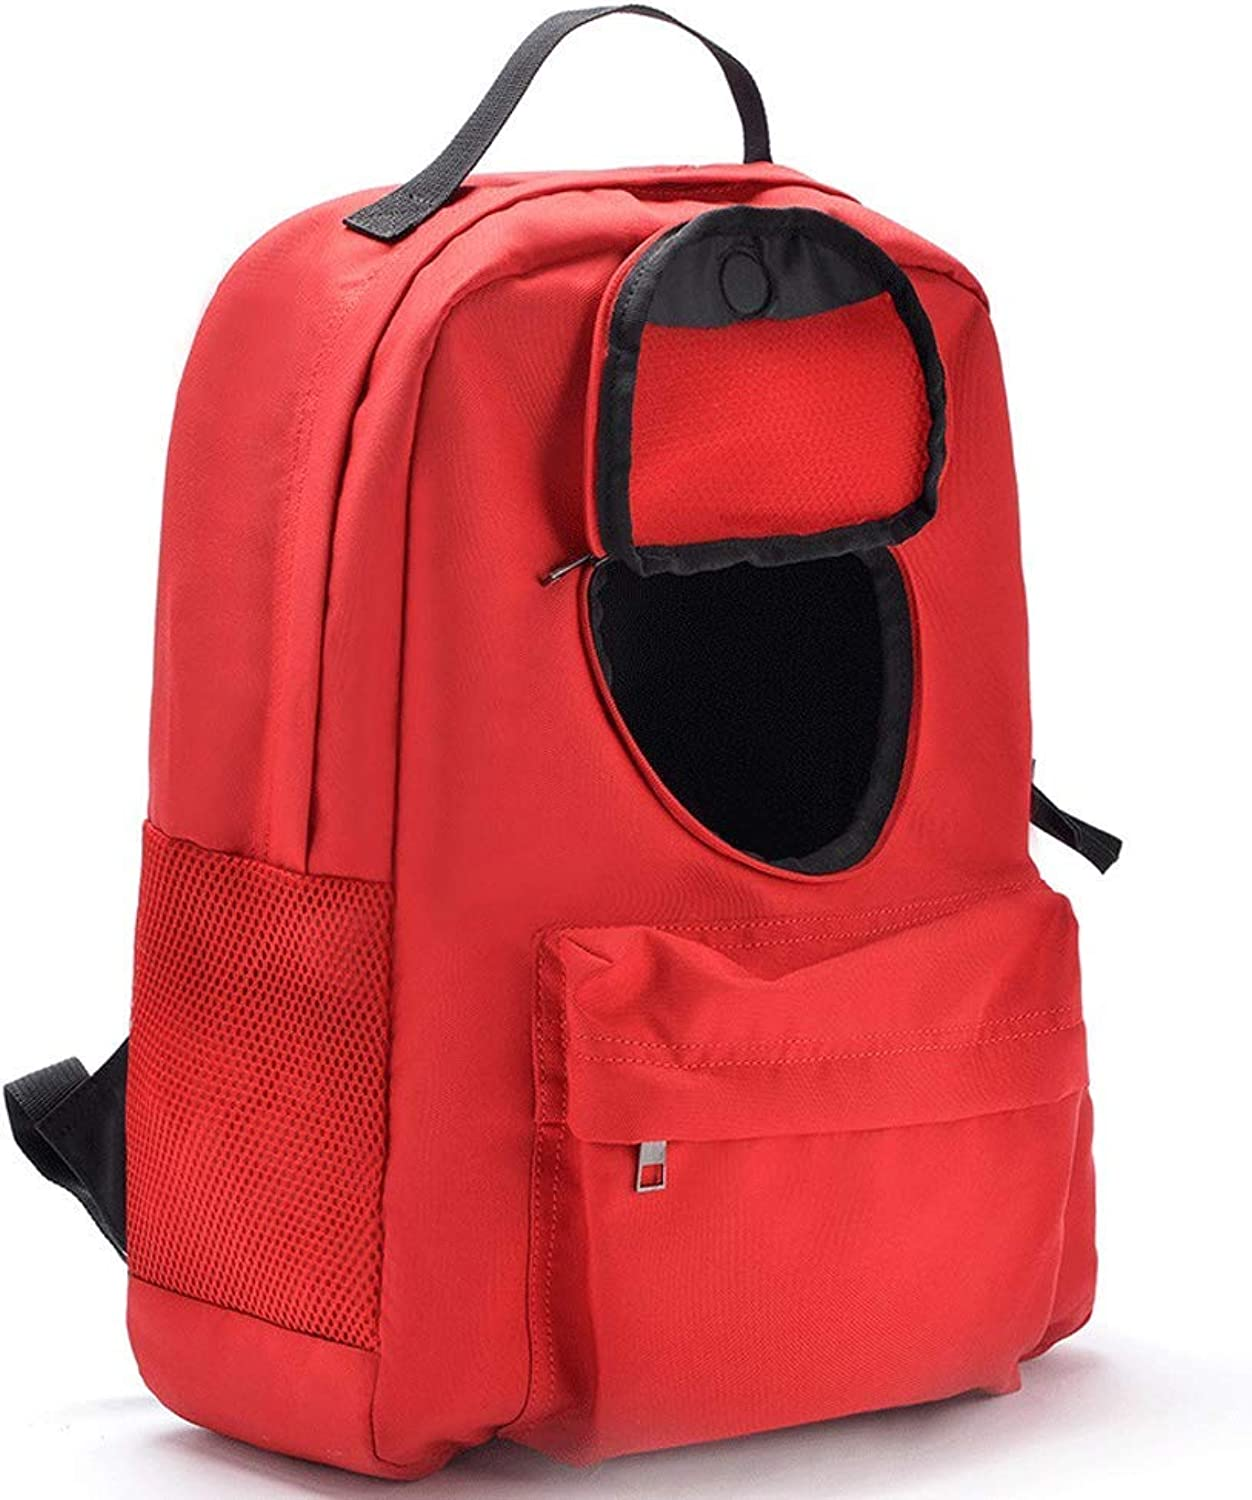 Pet Travel Carrier Pet Carrier for Small Dogs, Cats, Puppies, Kittens, Pets, Backpack Carry Your Pet with You Safely and Comfortably Ourtdoor Pet Bag